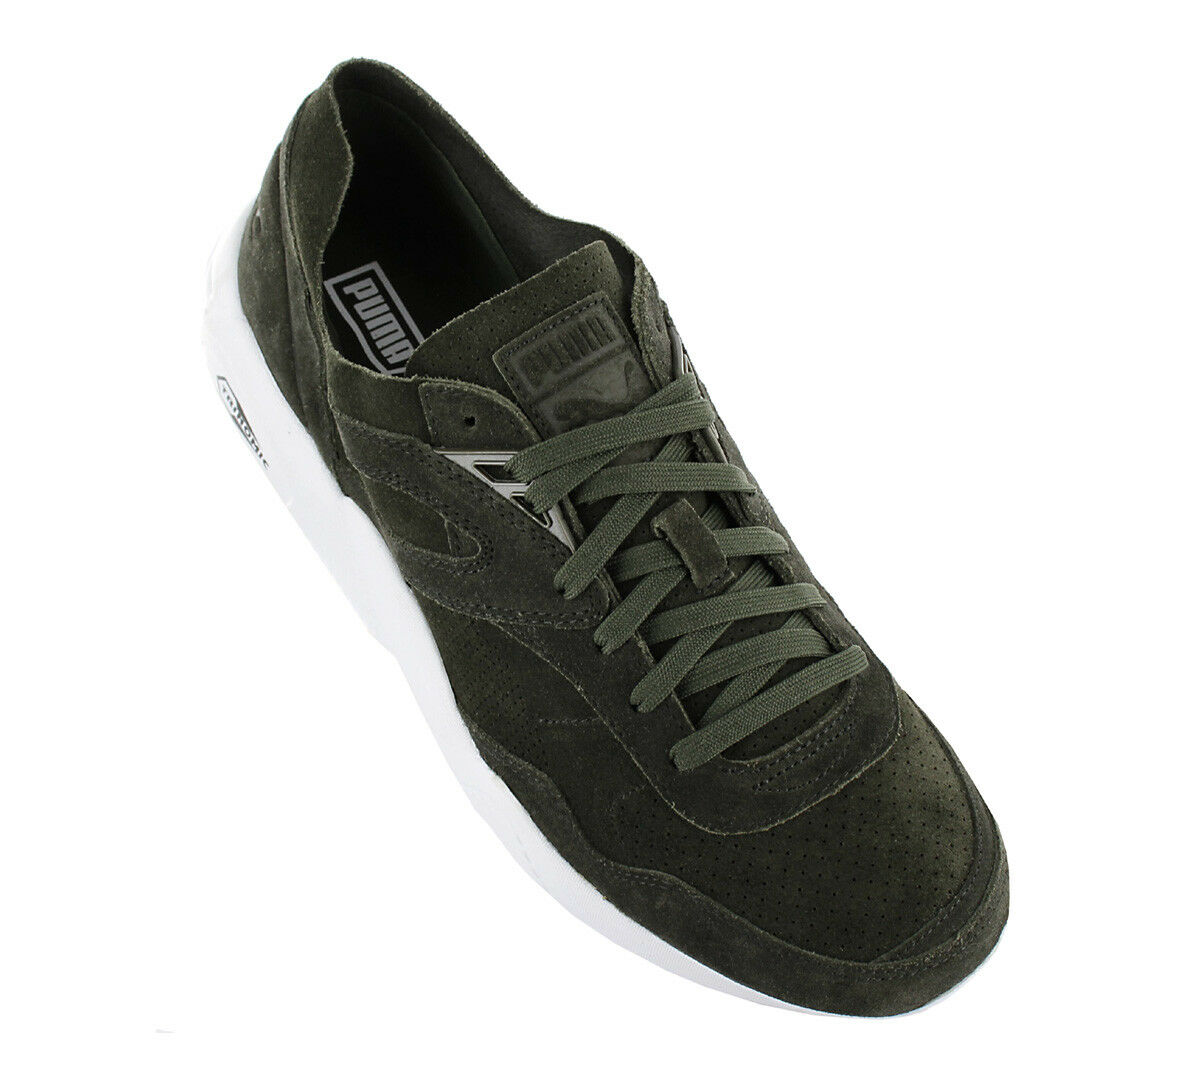 NEW Puma R698 Soft 360104-08 Men''s shoes Trainers Sneakers SALE